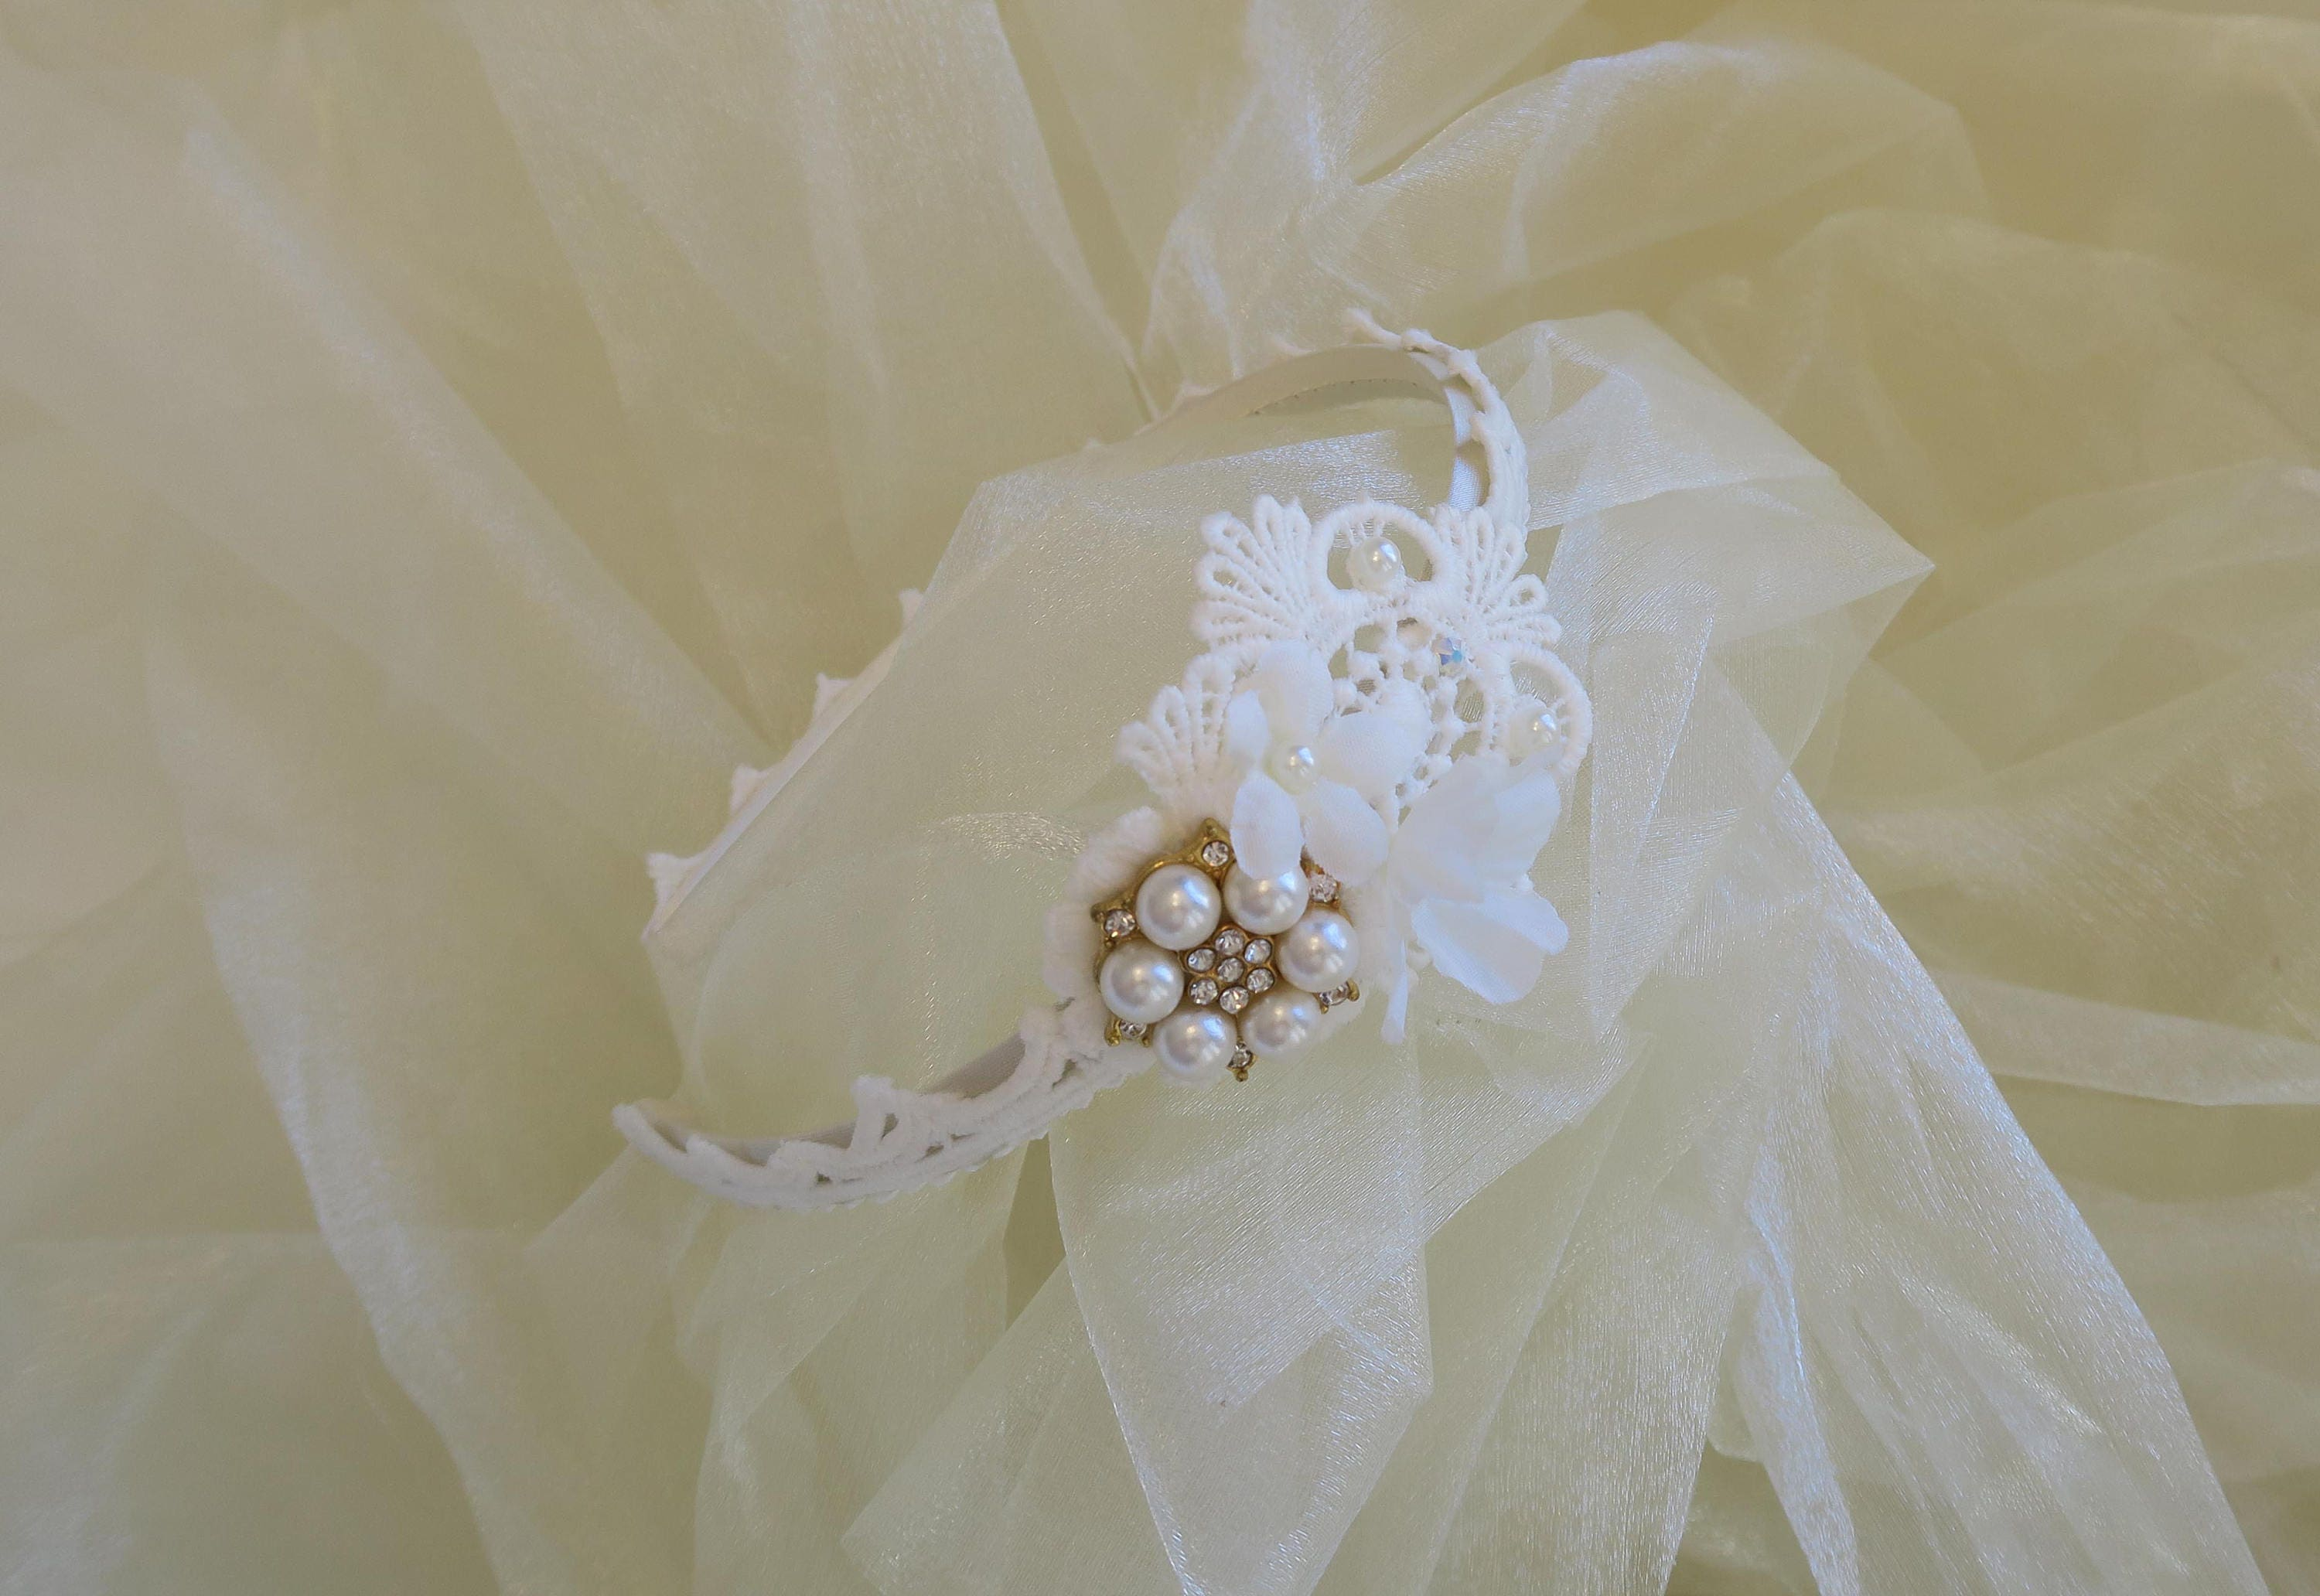 Lace Wedding Hedband Alice Band Tiara With White Flowers Acrylic